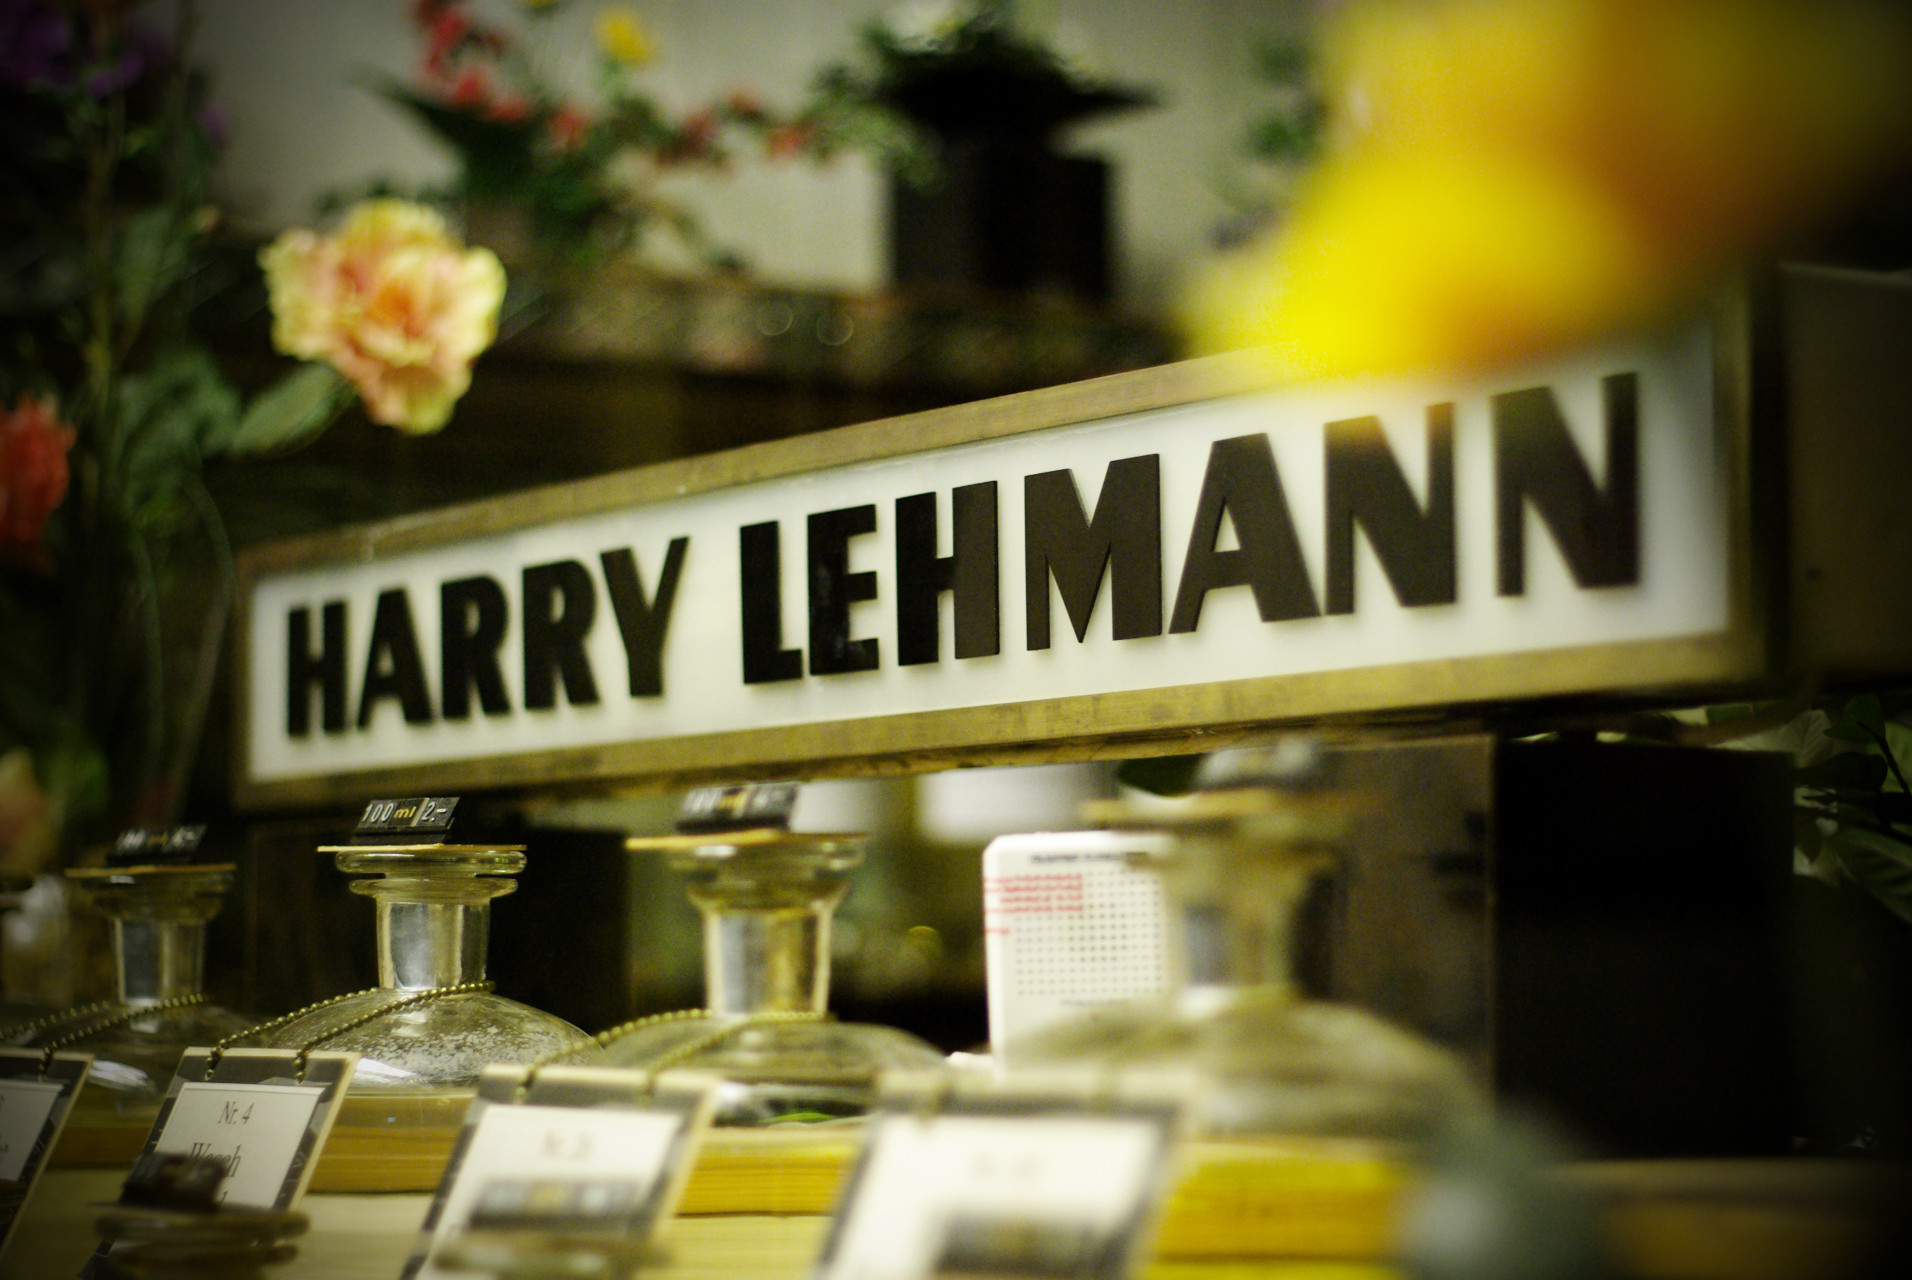 Harry Lehmann